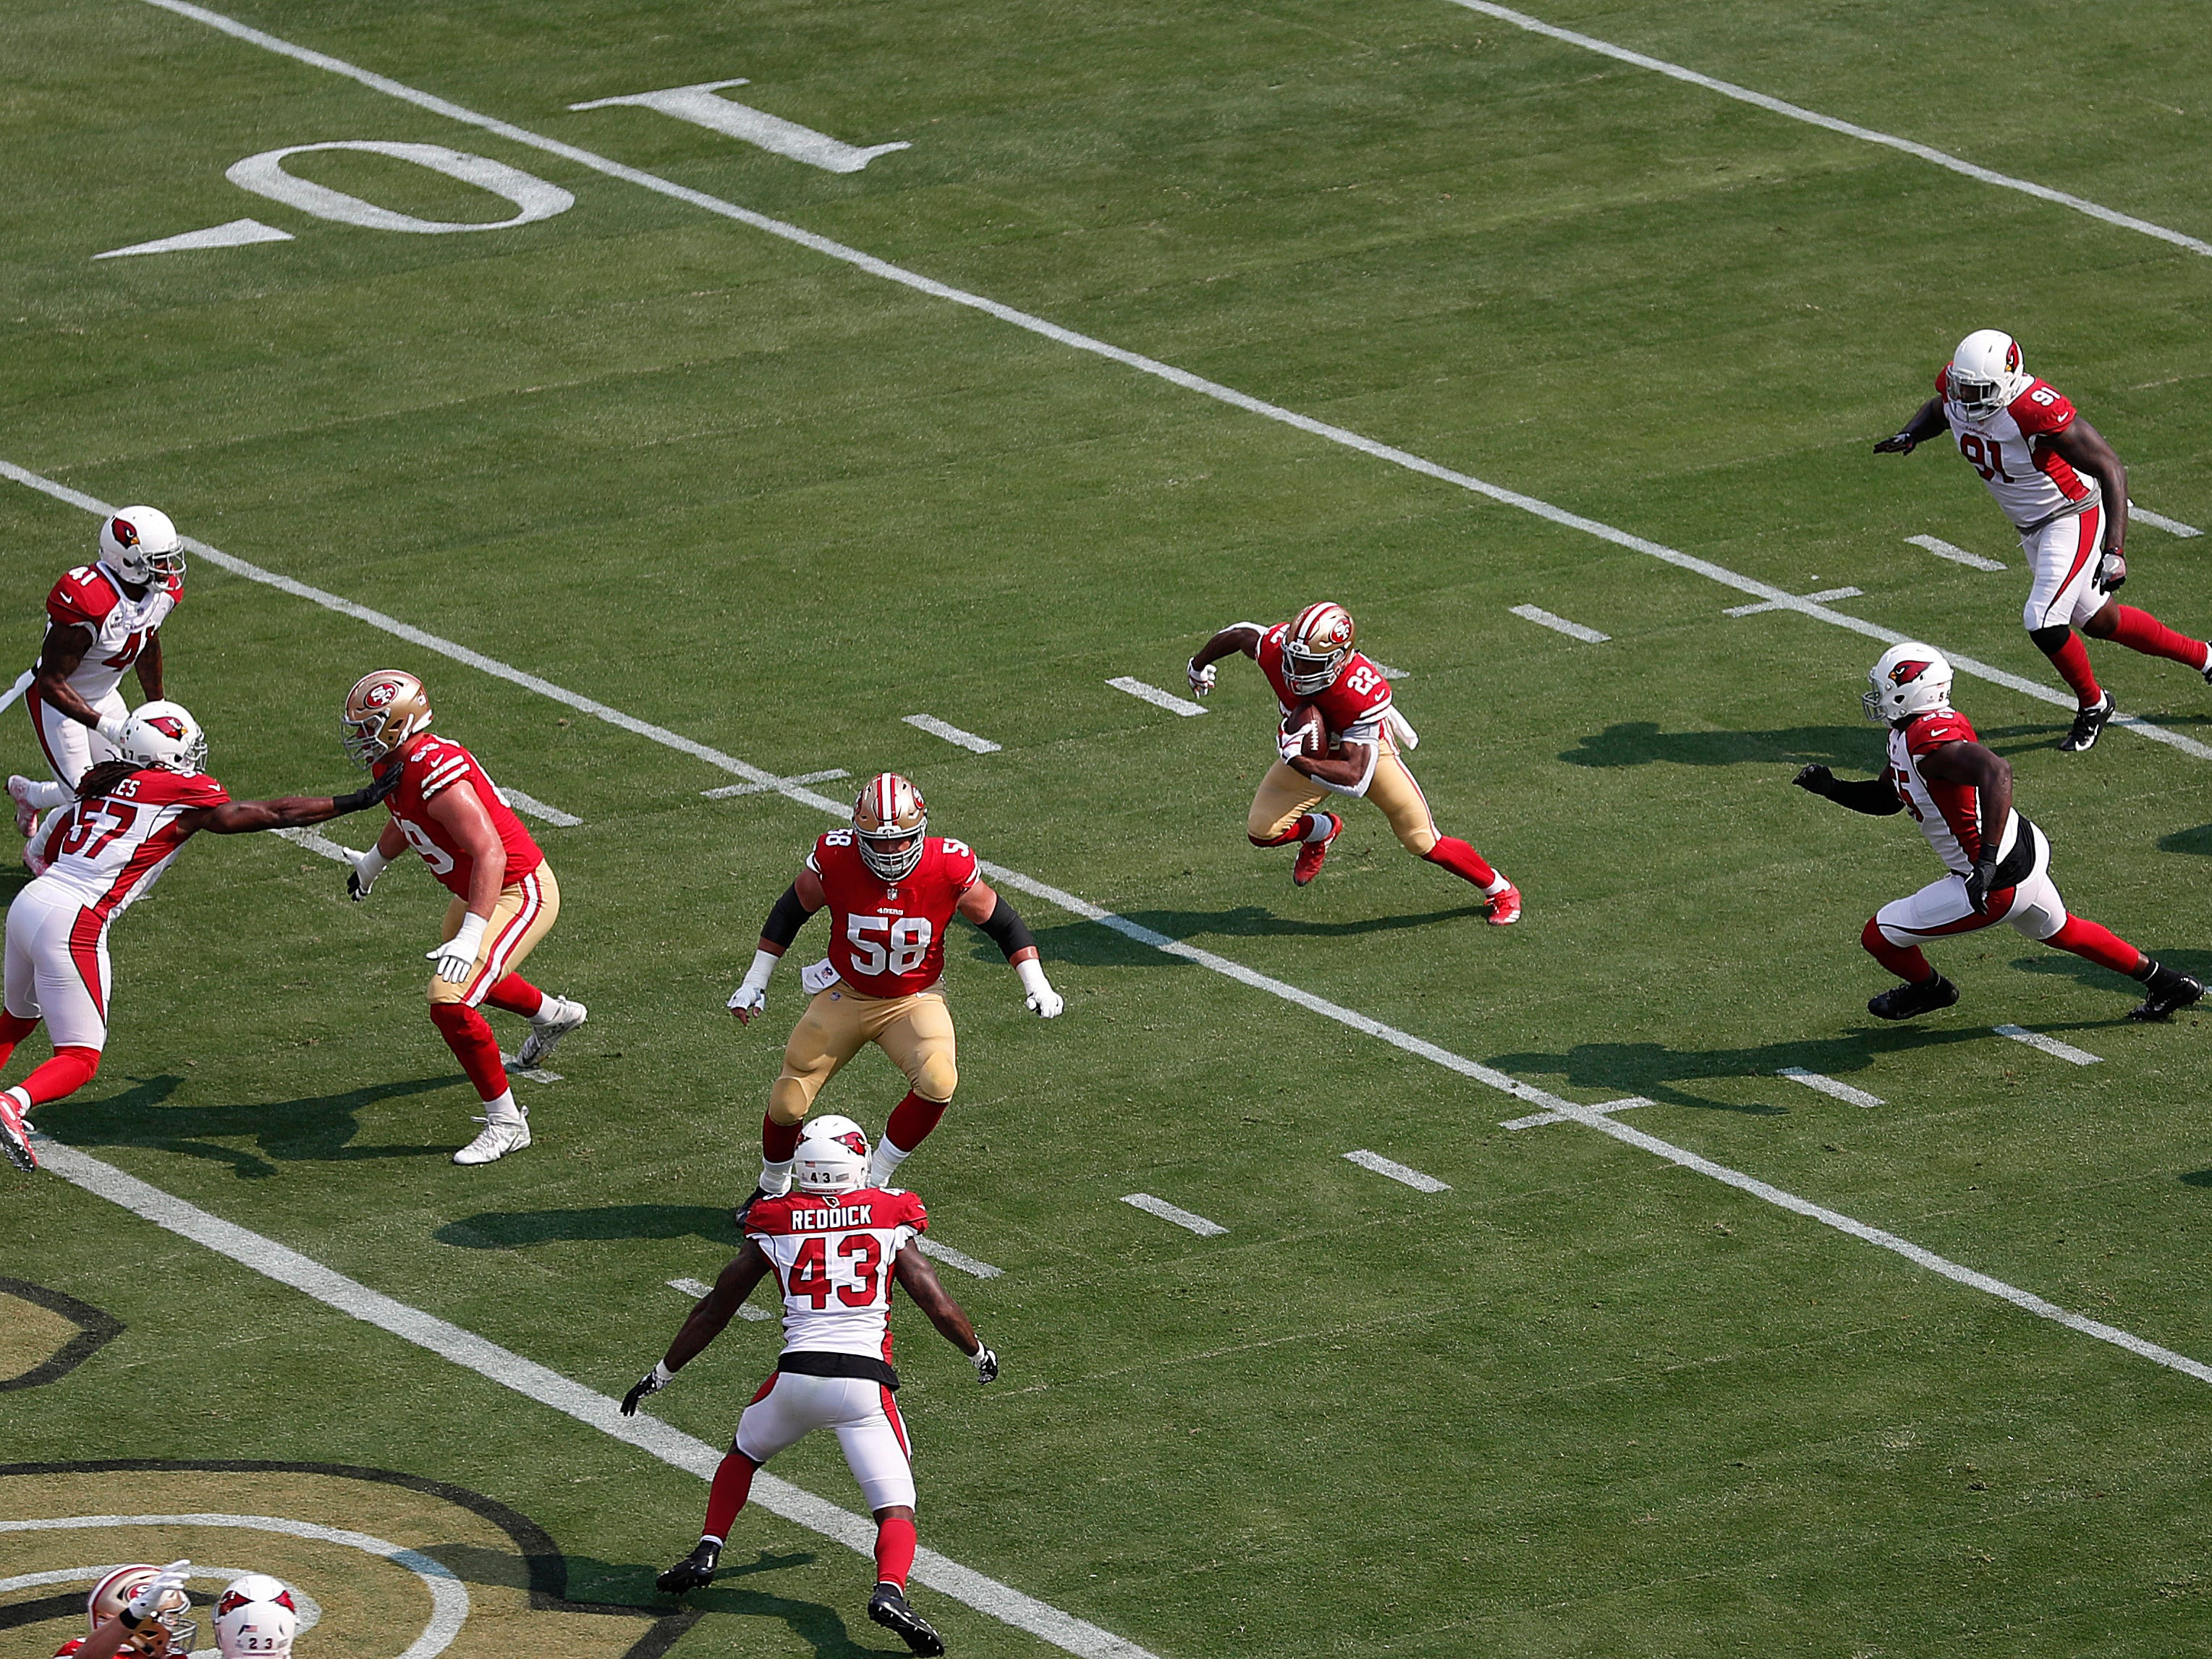 San Francisco 49ers running back Matt Breida (22) runs toward the end zone to score on a touchdown reception against the Arizona Cardinals during the first half of an NFL football game in Santa Clara, Calif., Sunday, Oct. 7, 2018.